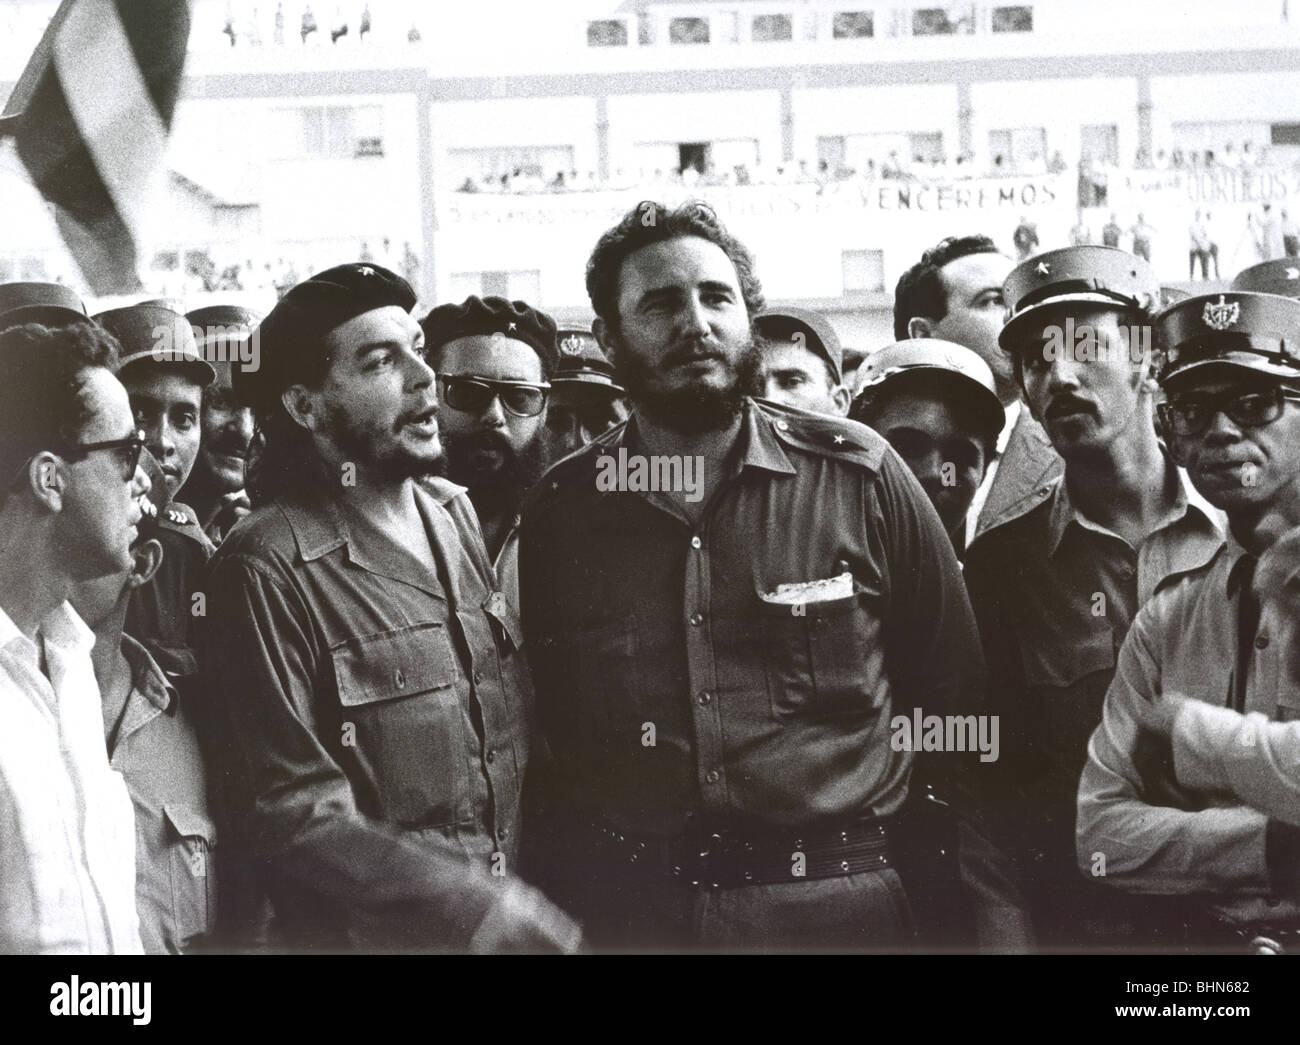 fidel castro and cuba essay Cuban leader fidel castro (1926-2016) established the first communist state in  the western hemisphere after leading an overthrow of the military dictatorship of .